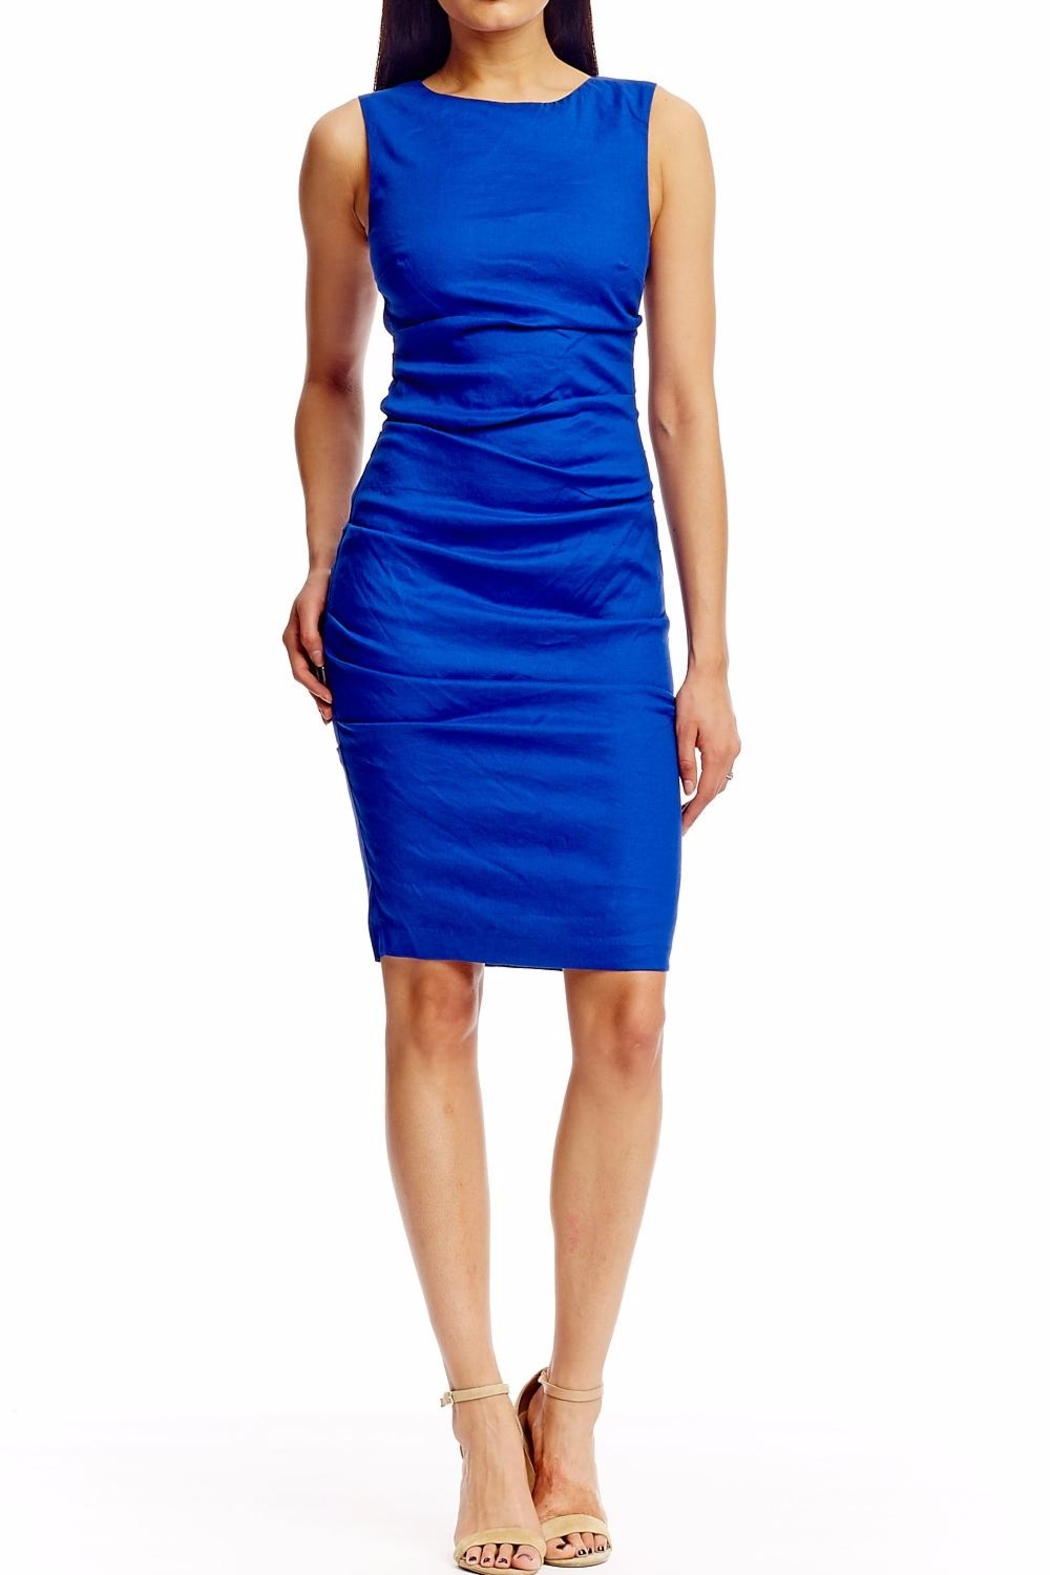 Nicole Miller Lauren Stretch Dress - Main Image